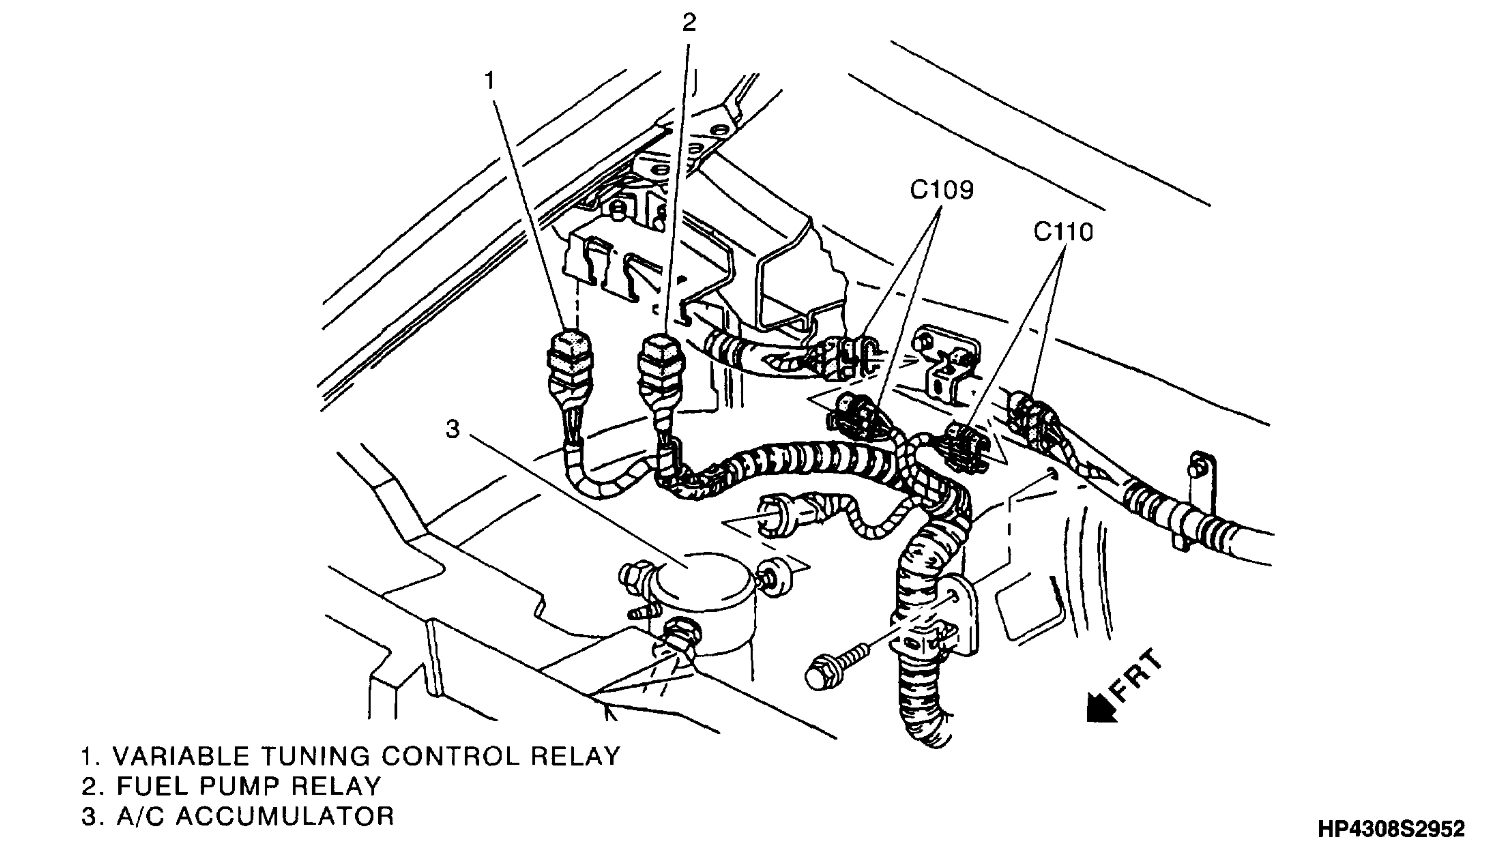 Fuel Pump Relay Where Is The Fuel Pump Relay Located At